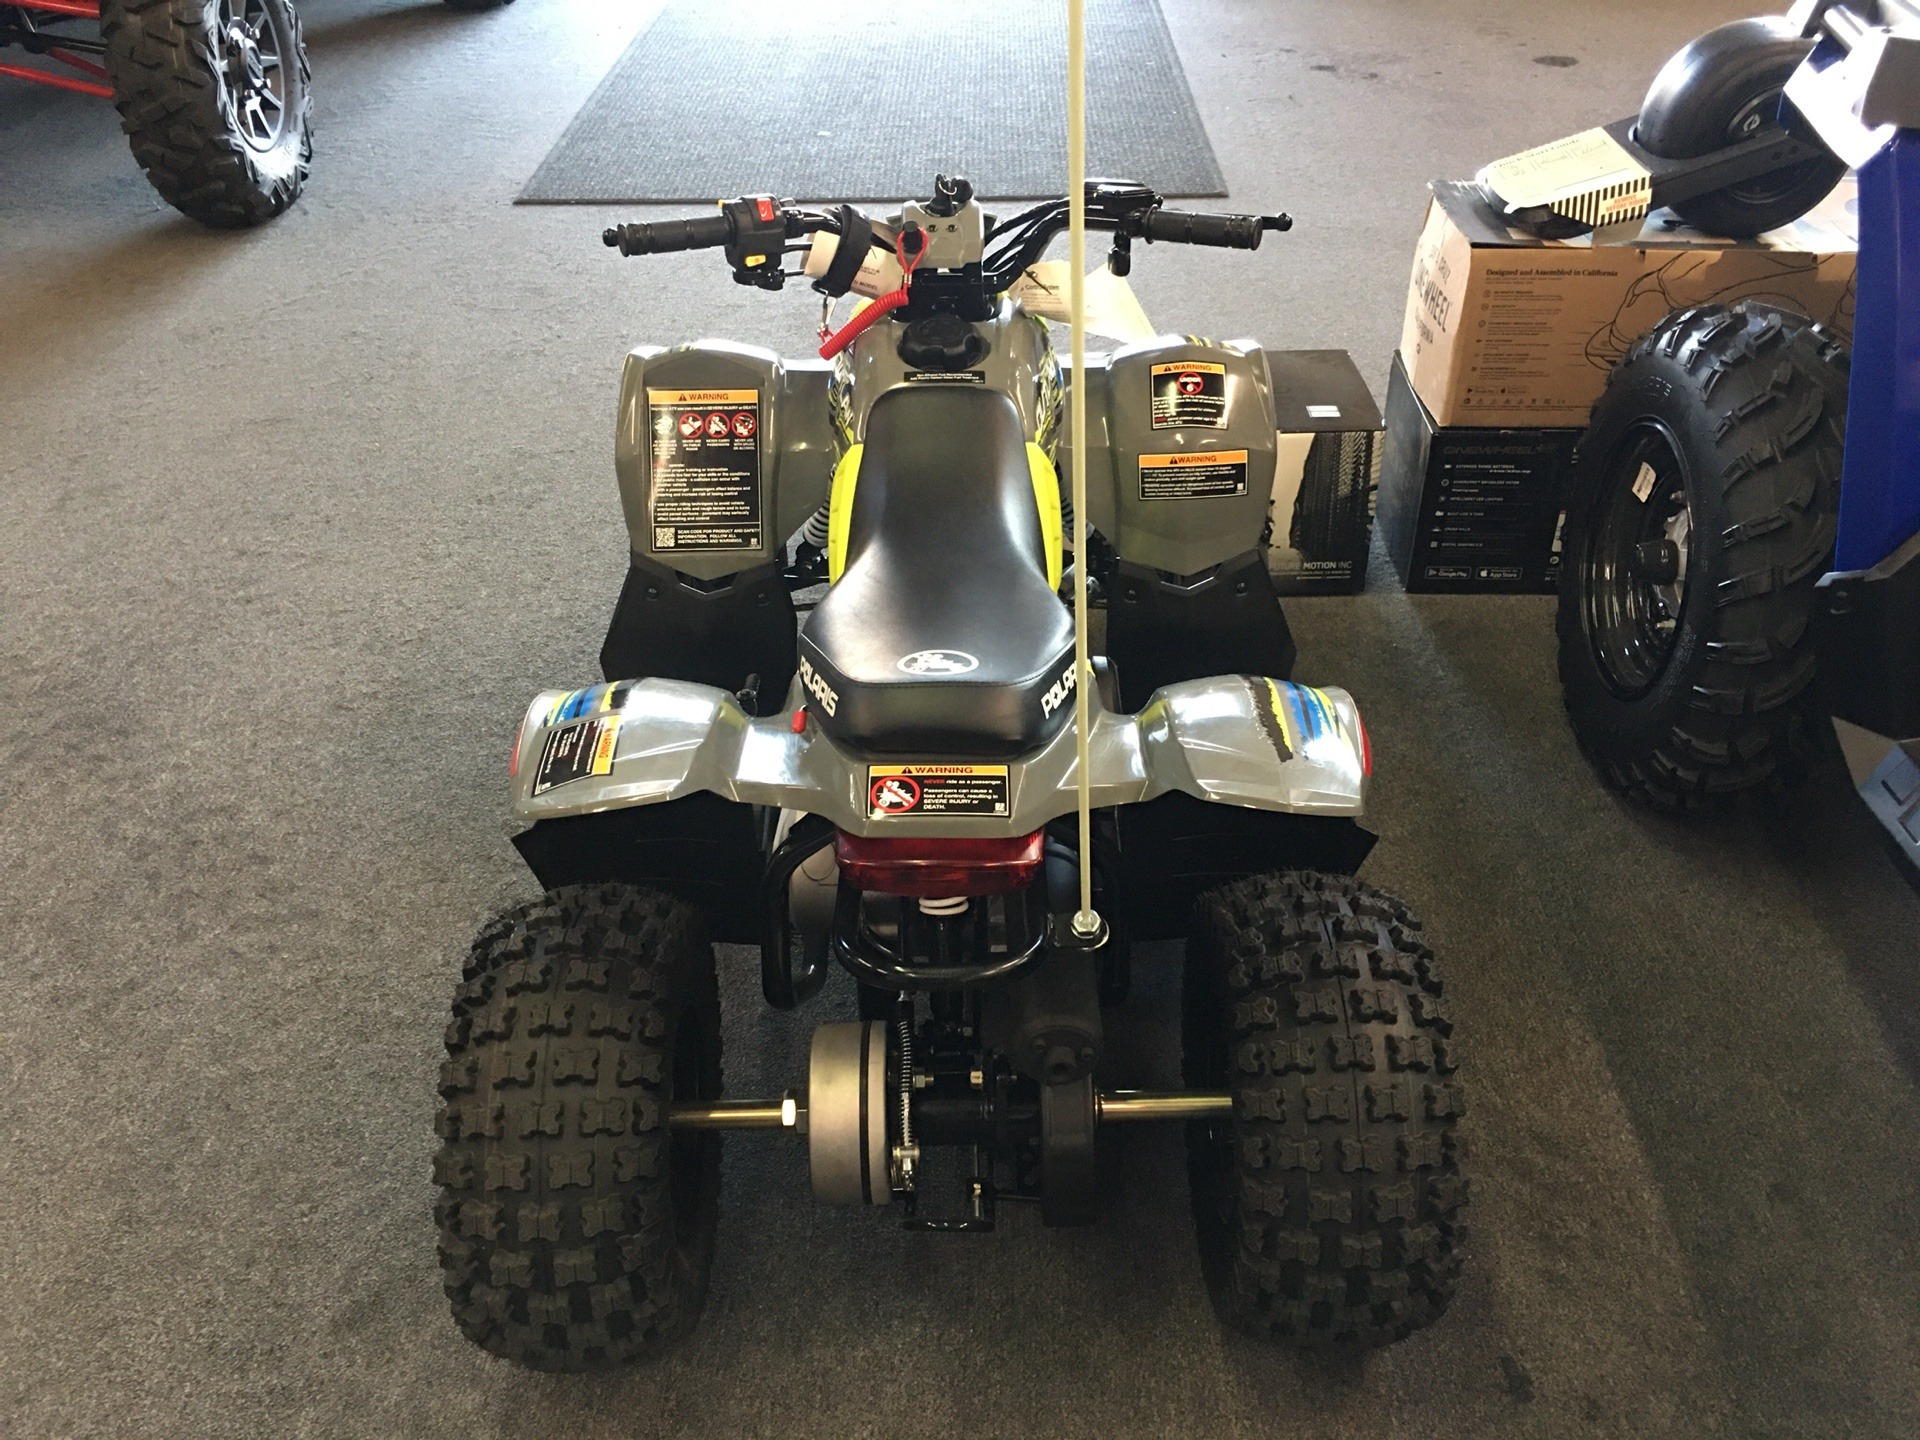 2019 Polaris Outlaw 50 in Paso Robles, California - Photo 3